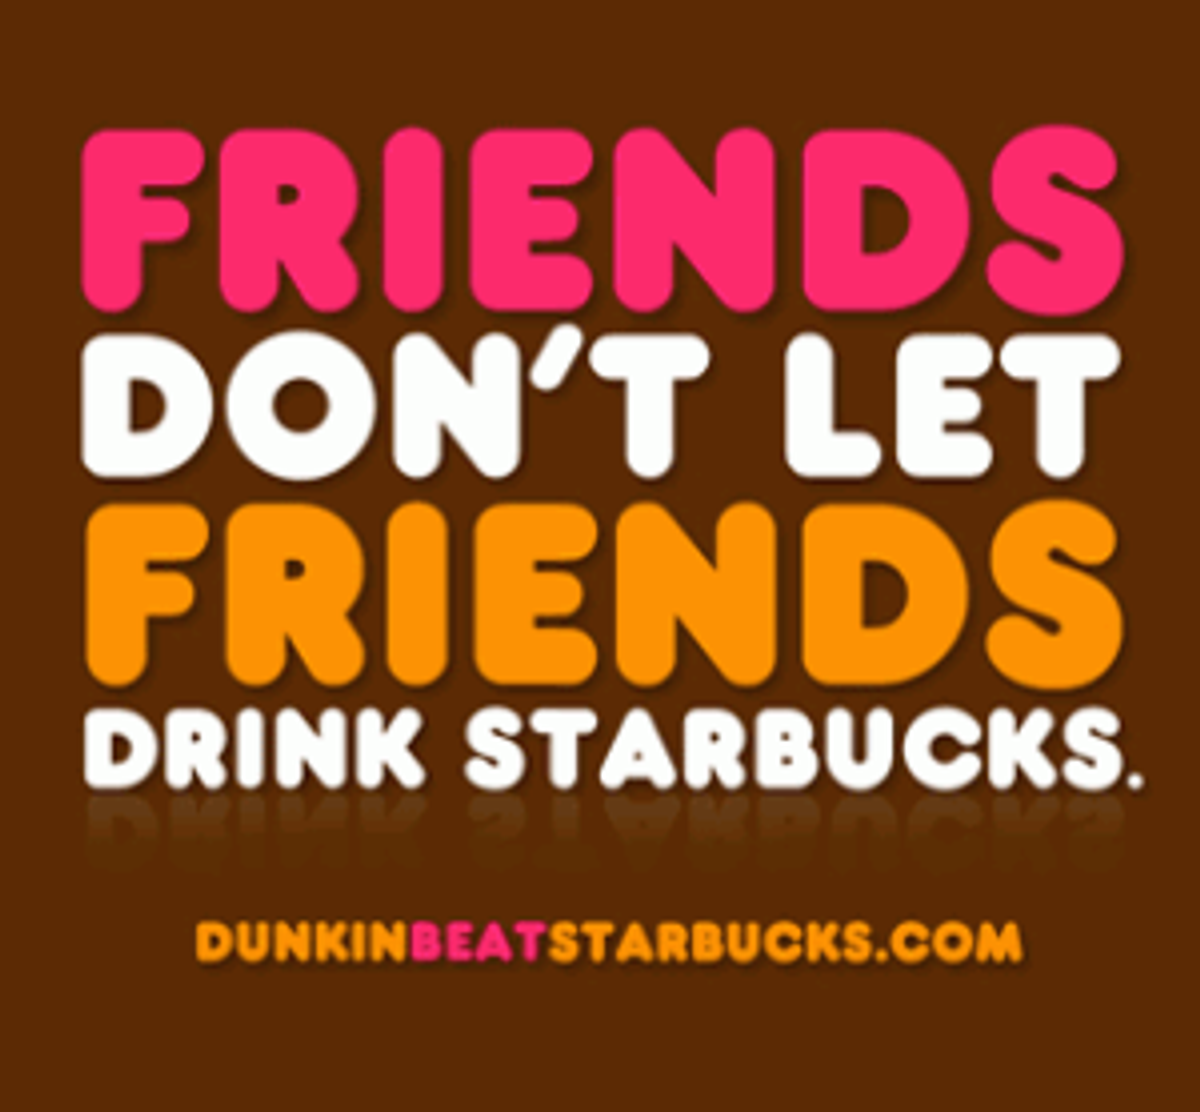 6 Reasons Why Dunkin' Is Better Than Starbucks